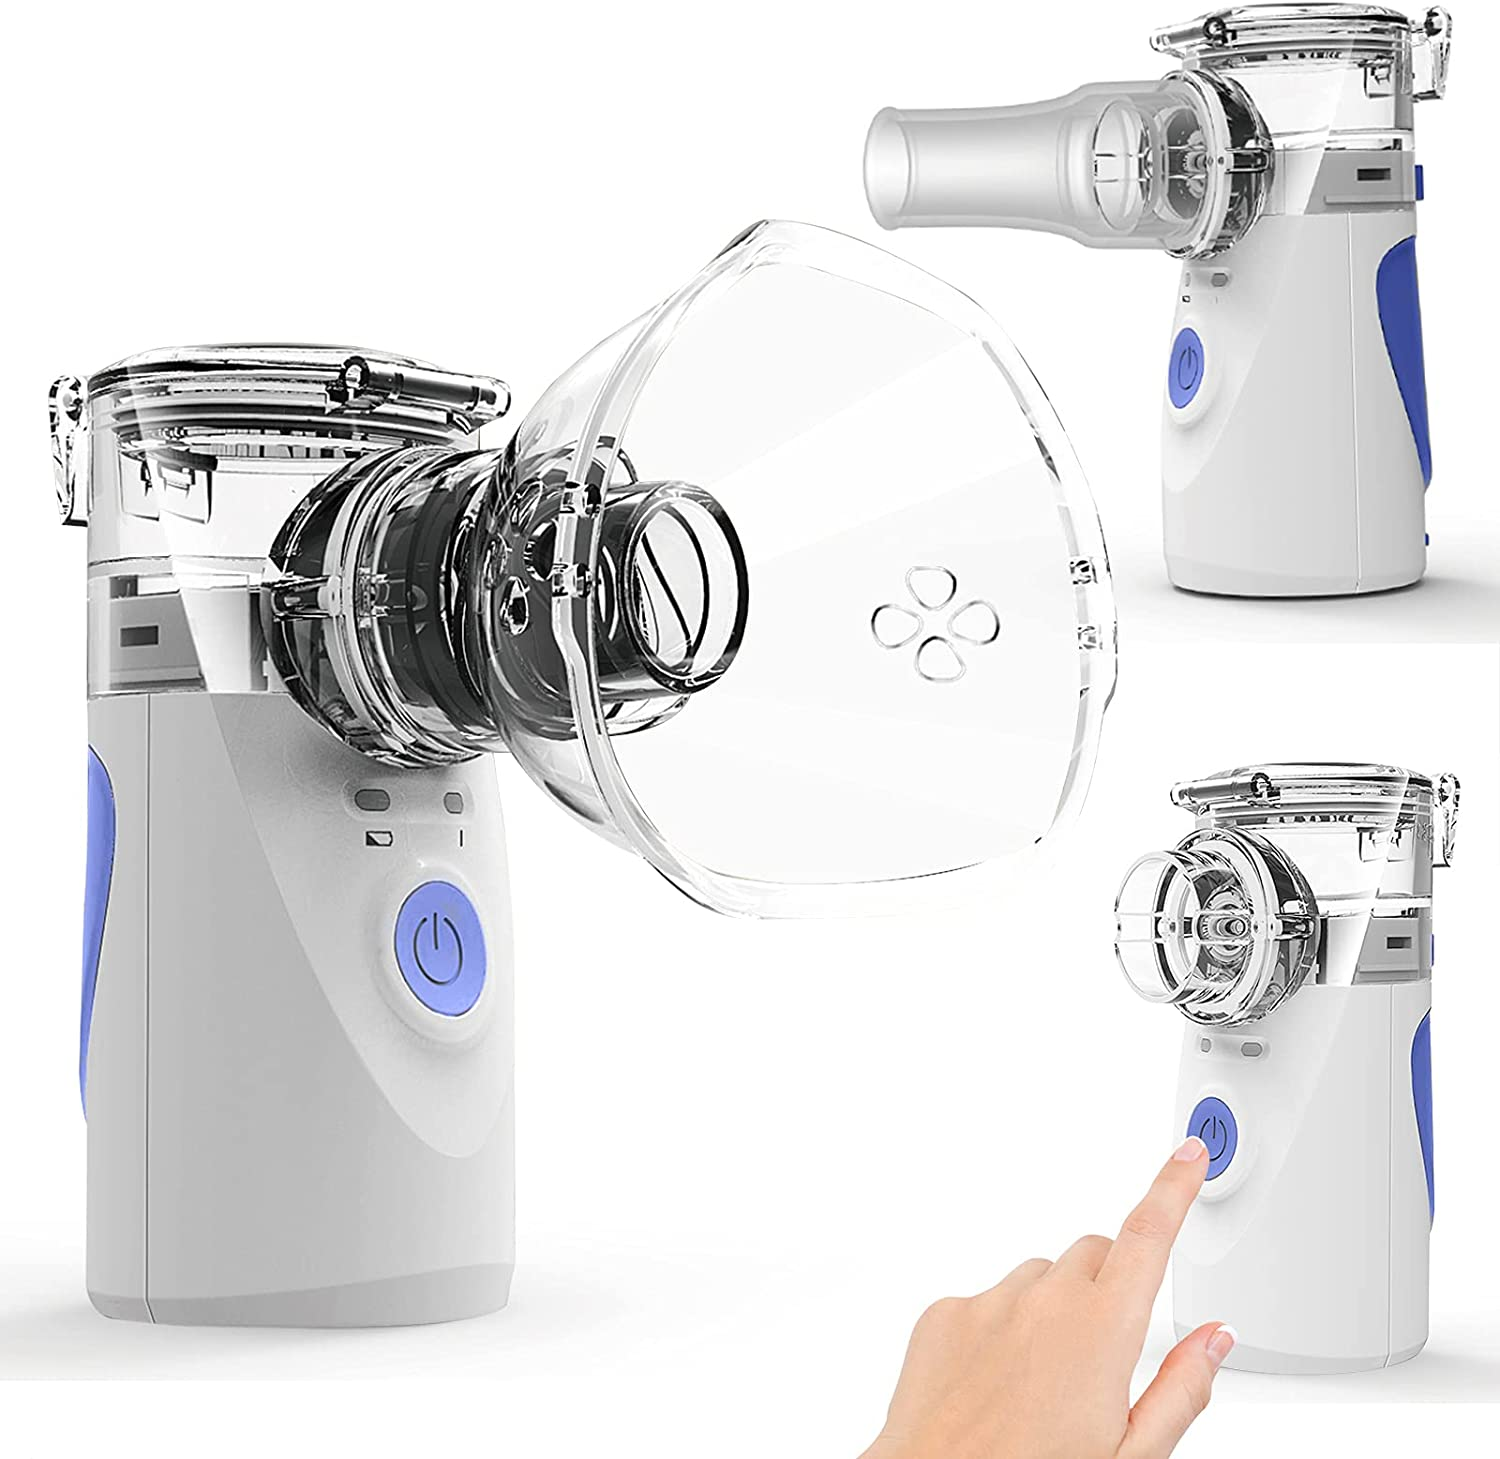 Ultrasonic Portable Nebulizer, Handheld Nebulizer of Cool Mist, Small Nebulizer with Two Modes for Breathing Problems, Used at Home, Office, Outdoor(Blue) : Clothing, Shoes & Jewelry